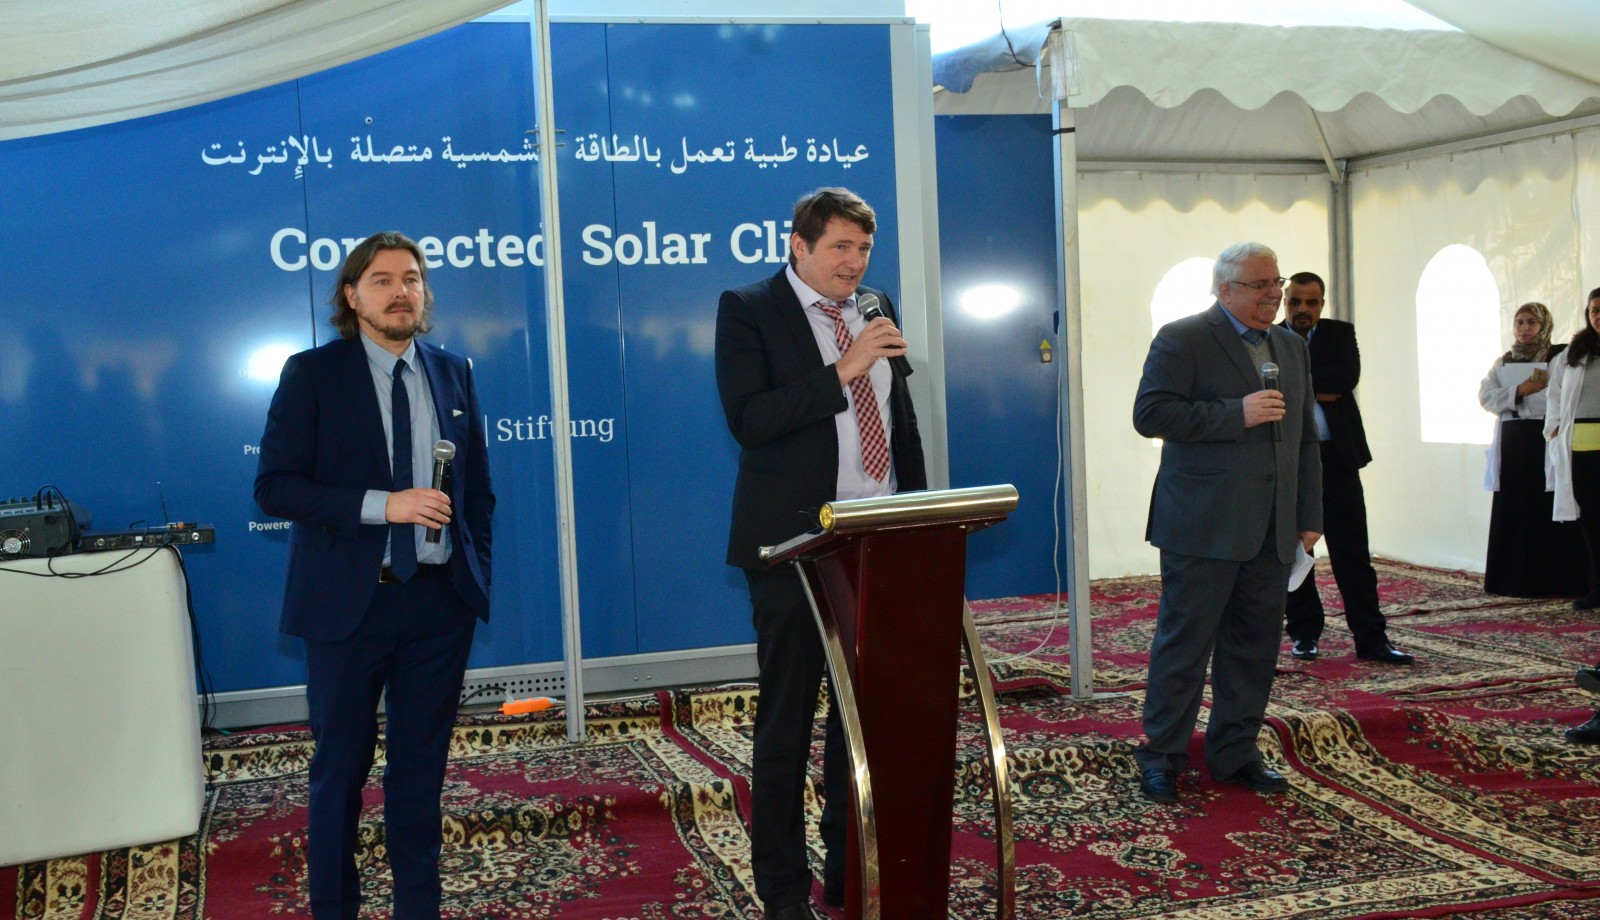 01_Connected Solar Clinic Inauguration